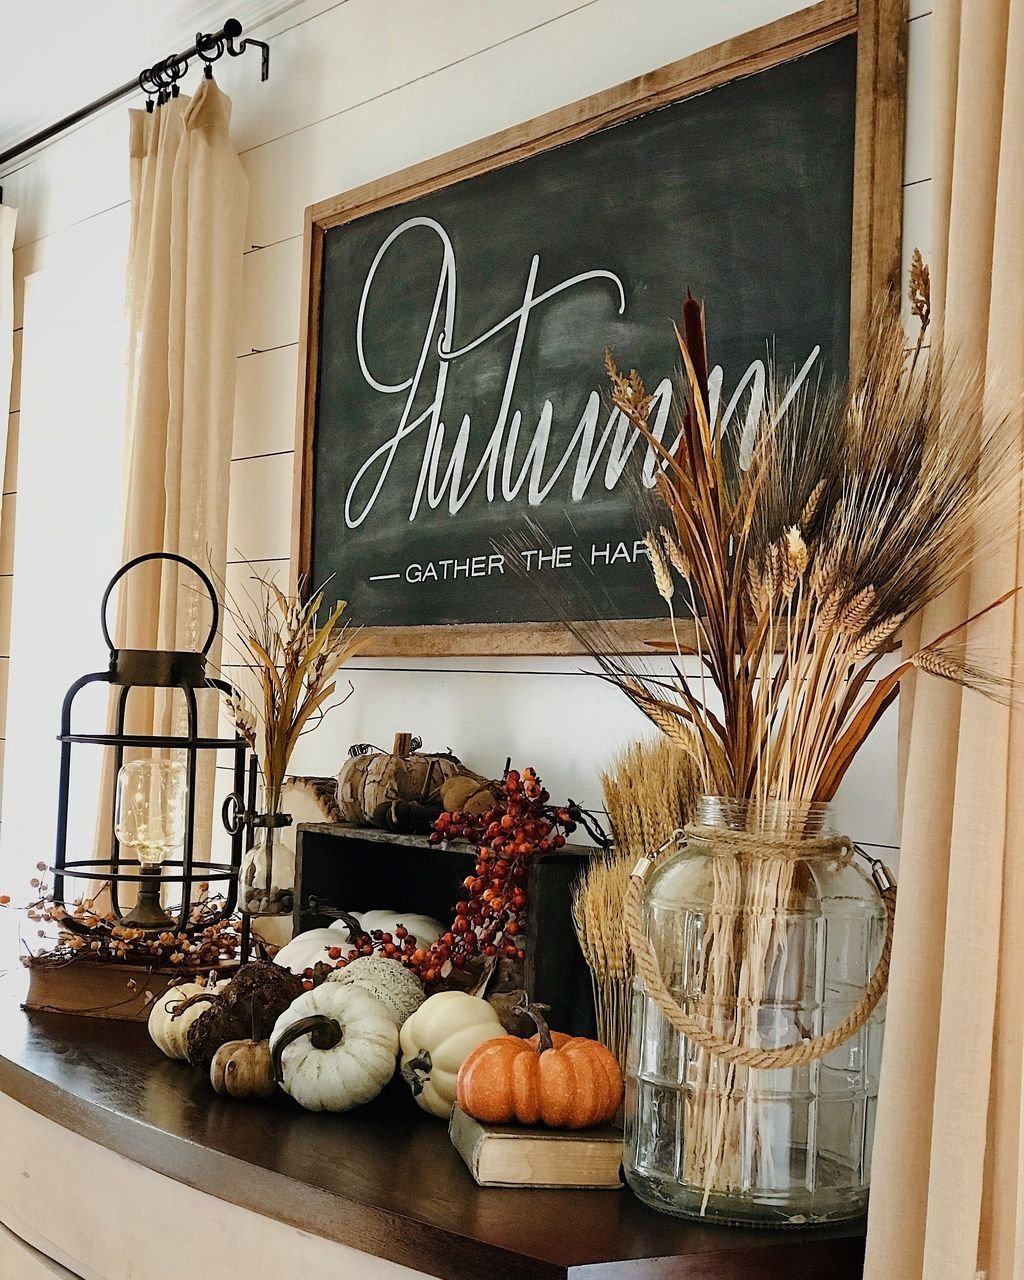 30+ Catchy Fall Home Decor Ideas That Will Inspire You #falldecorideasfortheporch